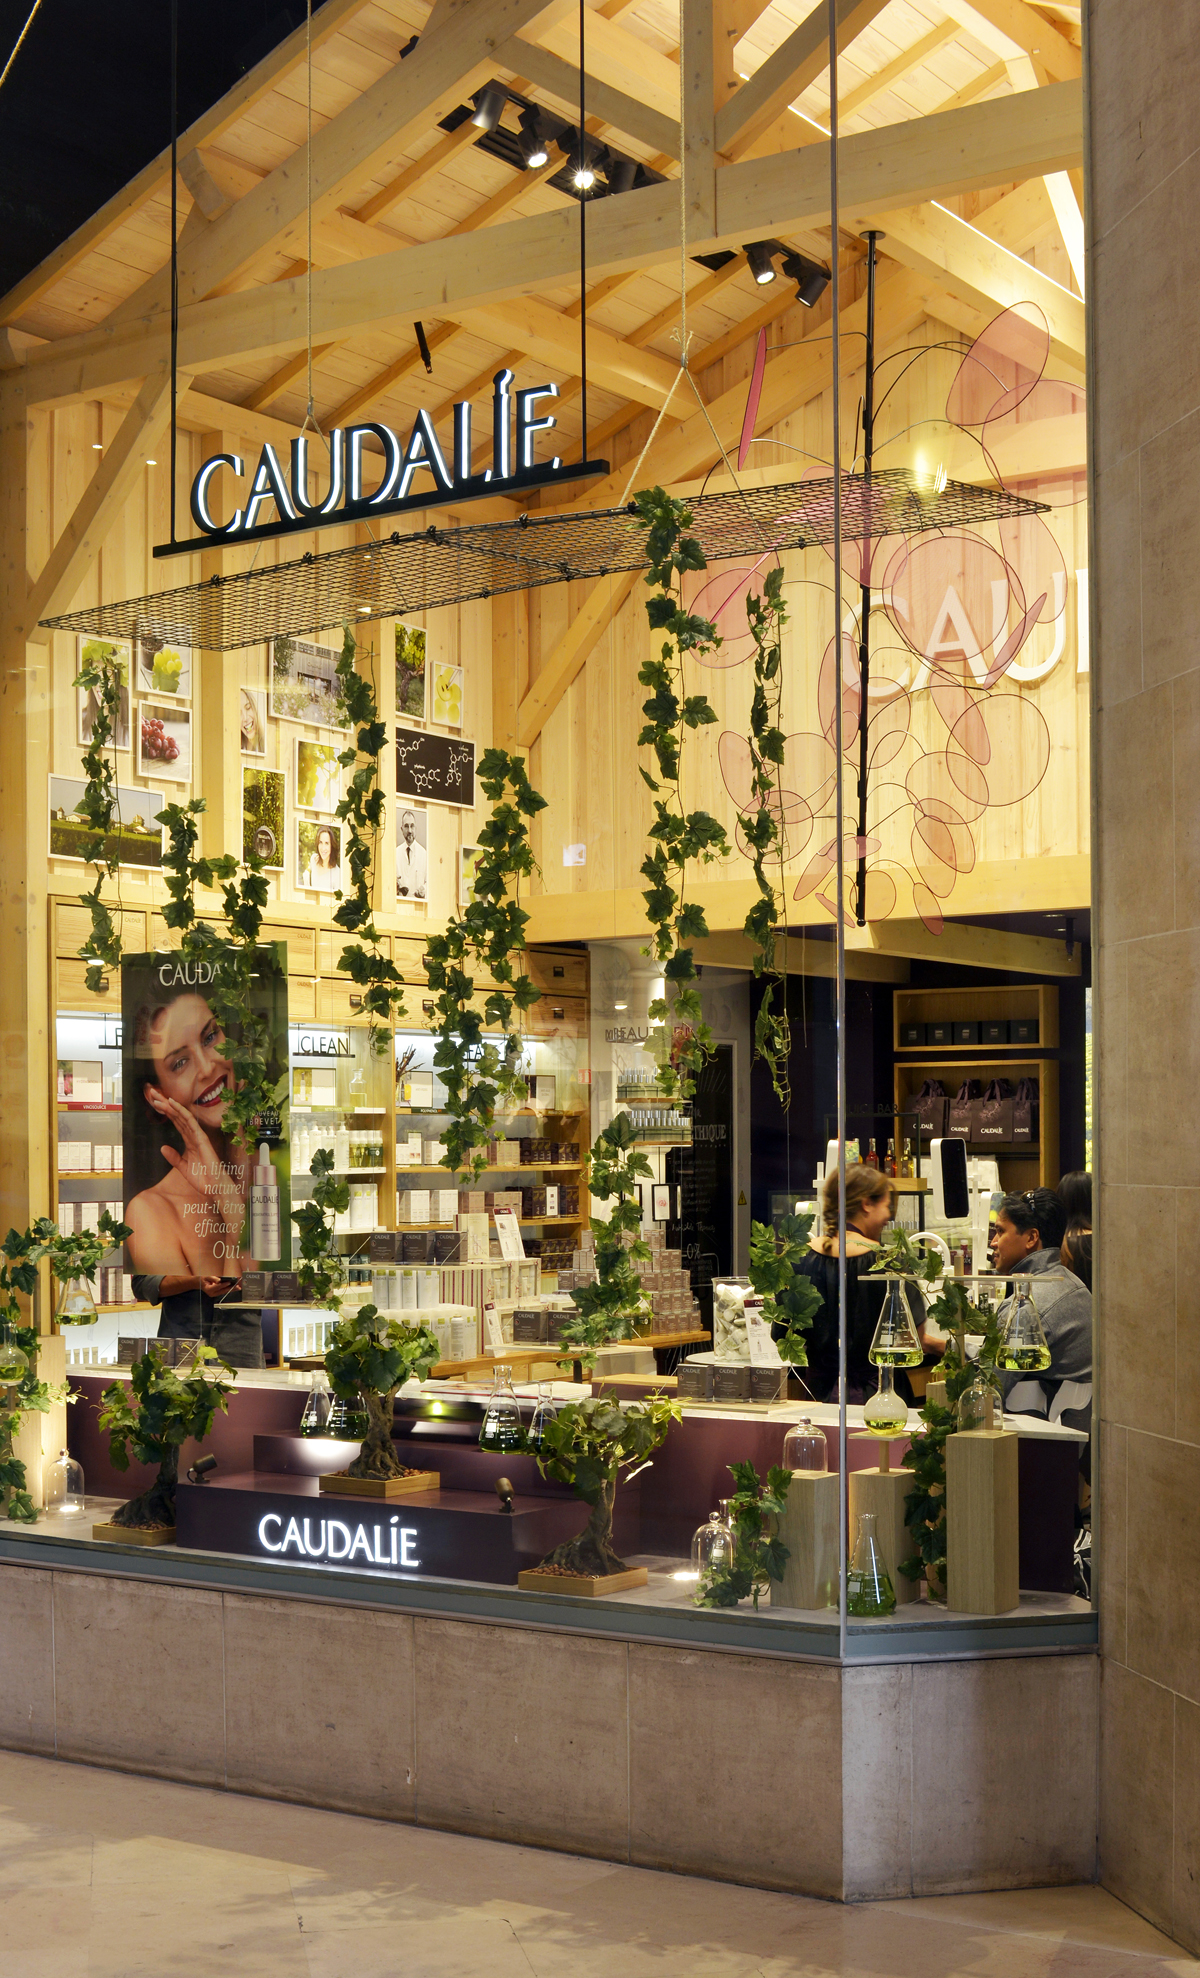 CAUDALIE PARIS LOUVRE VITRINE 2 SUSPENSION GRAPPE METAL TISSU TRANSPARENCE FABRICATION AGENCE MAJOTIK